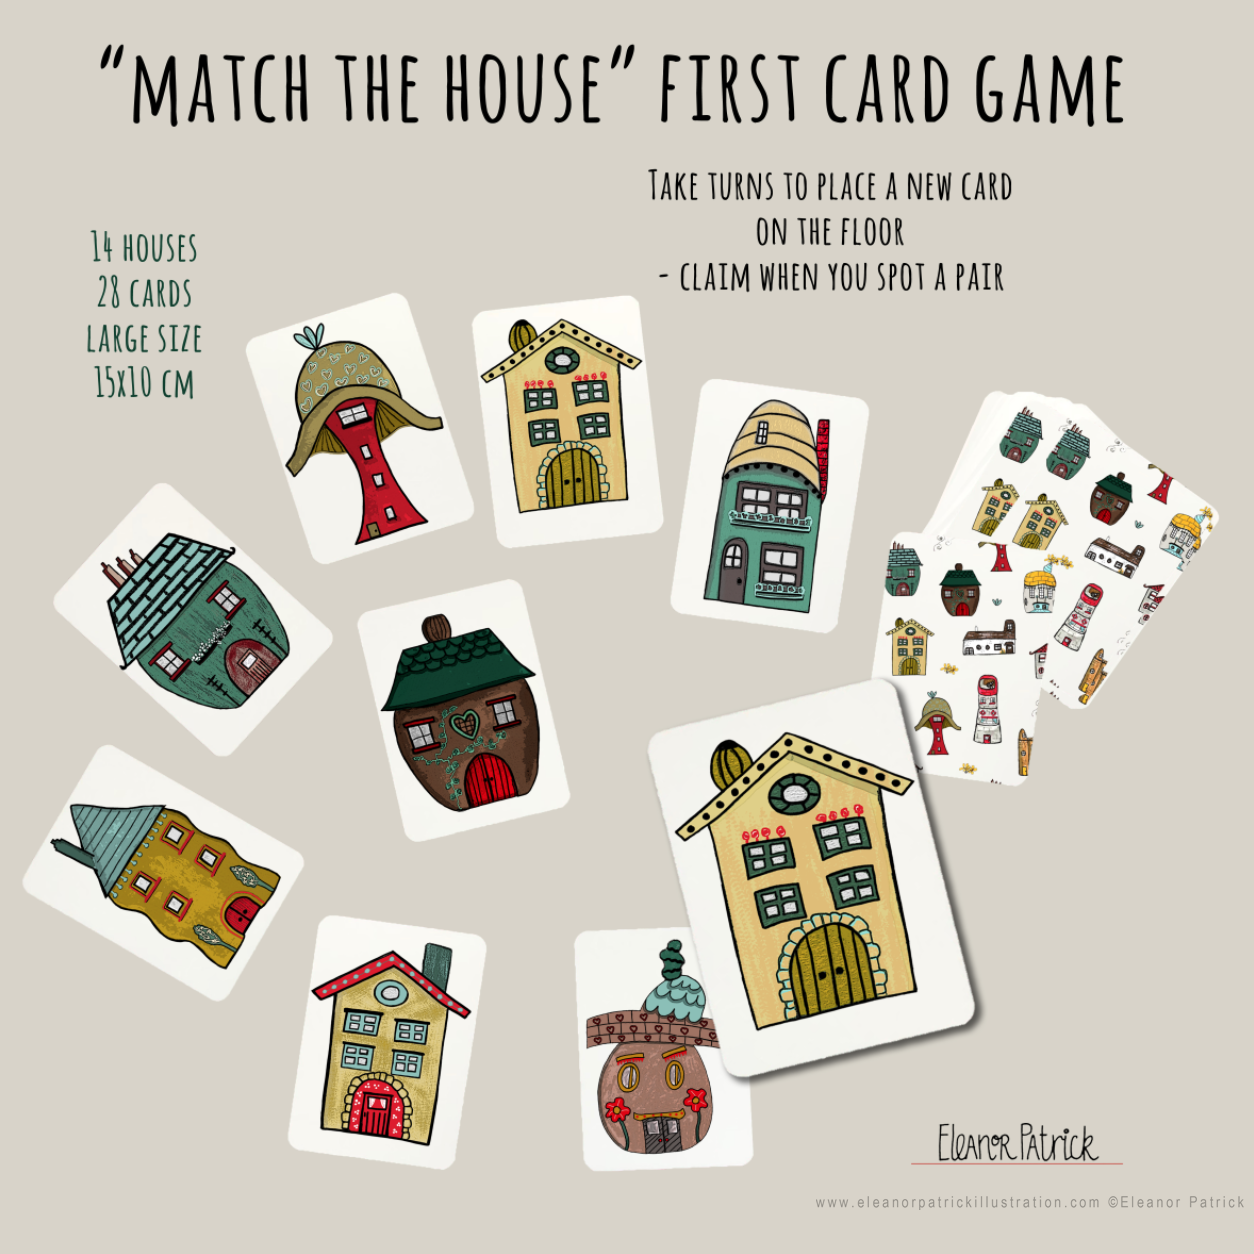 Match the House game screenshot